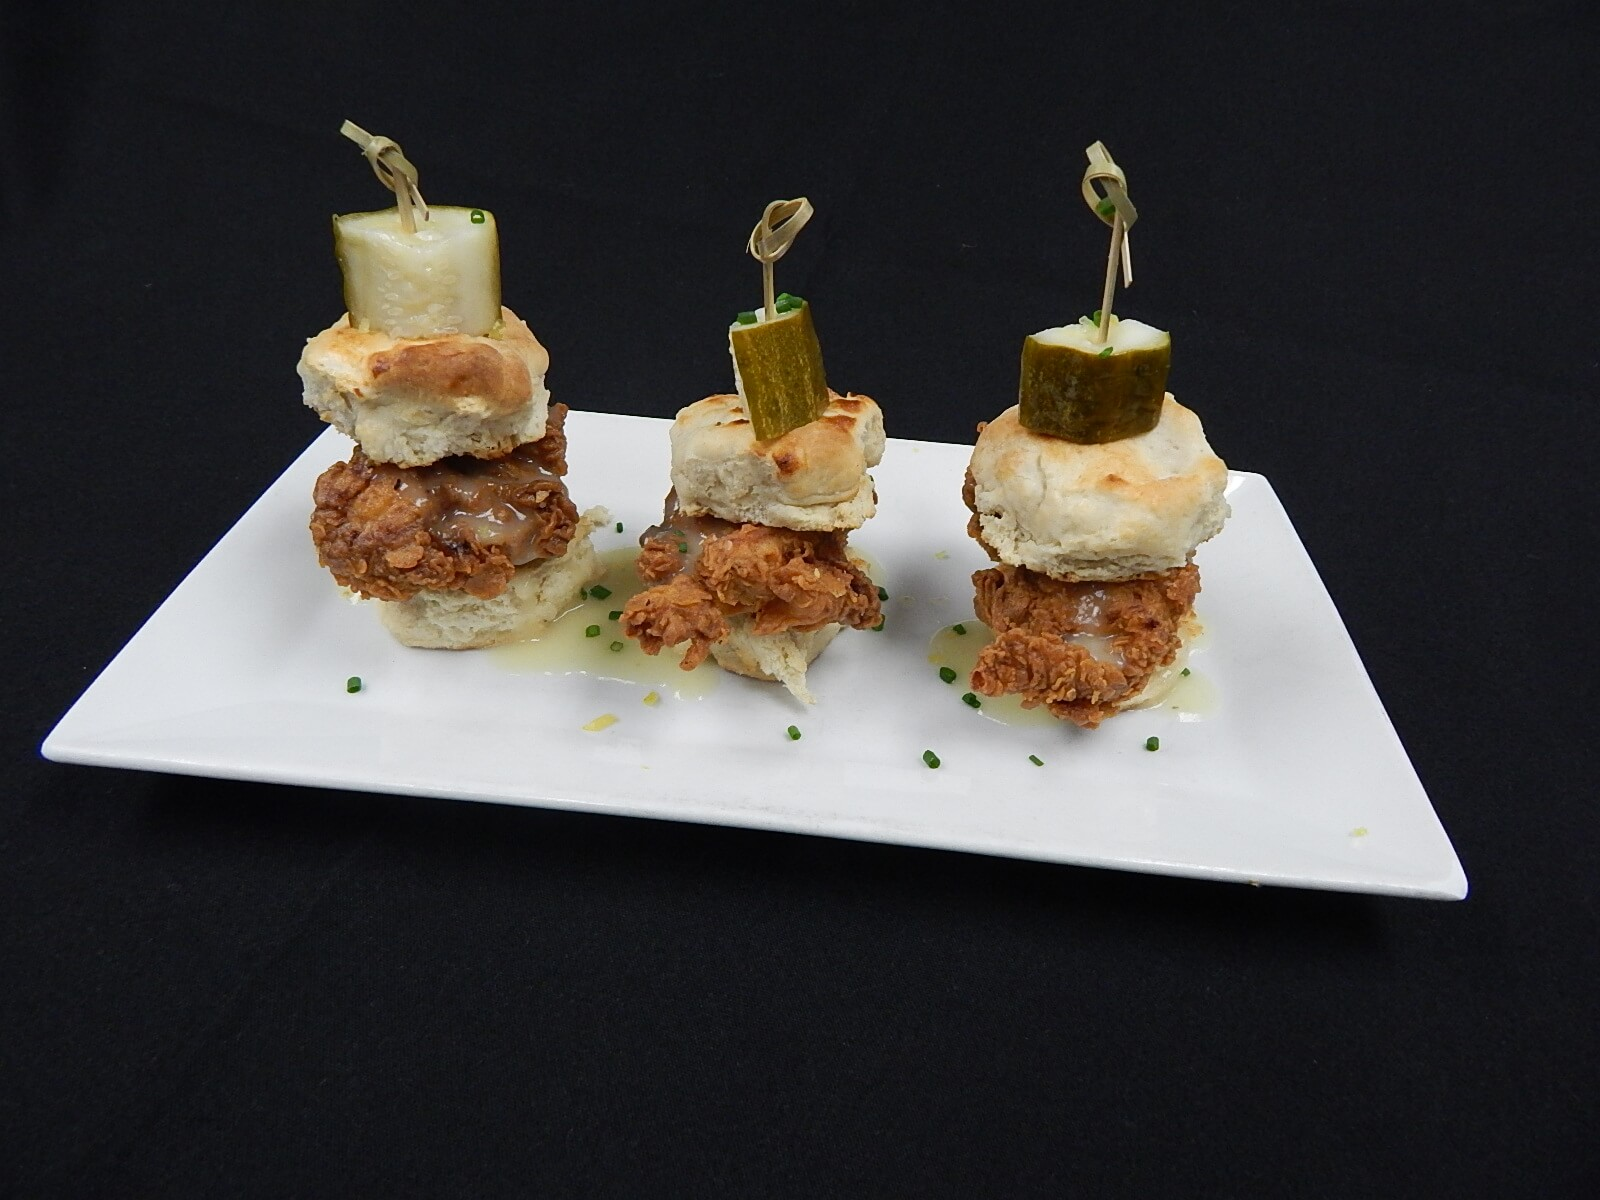 Chicken and biscuit sliders the living room for Living room 101 atlantic ave boston